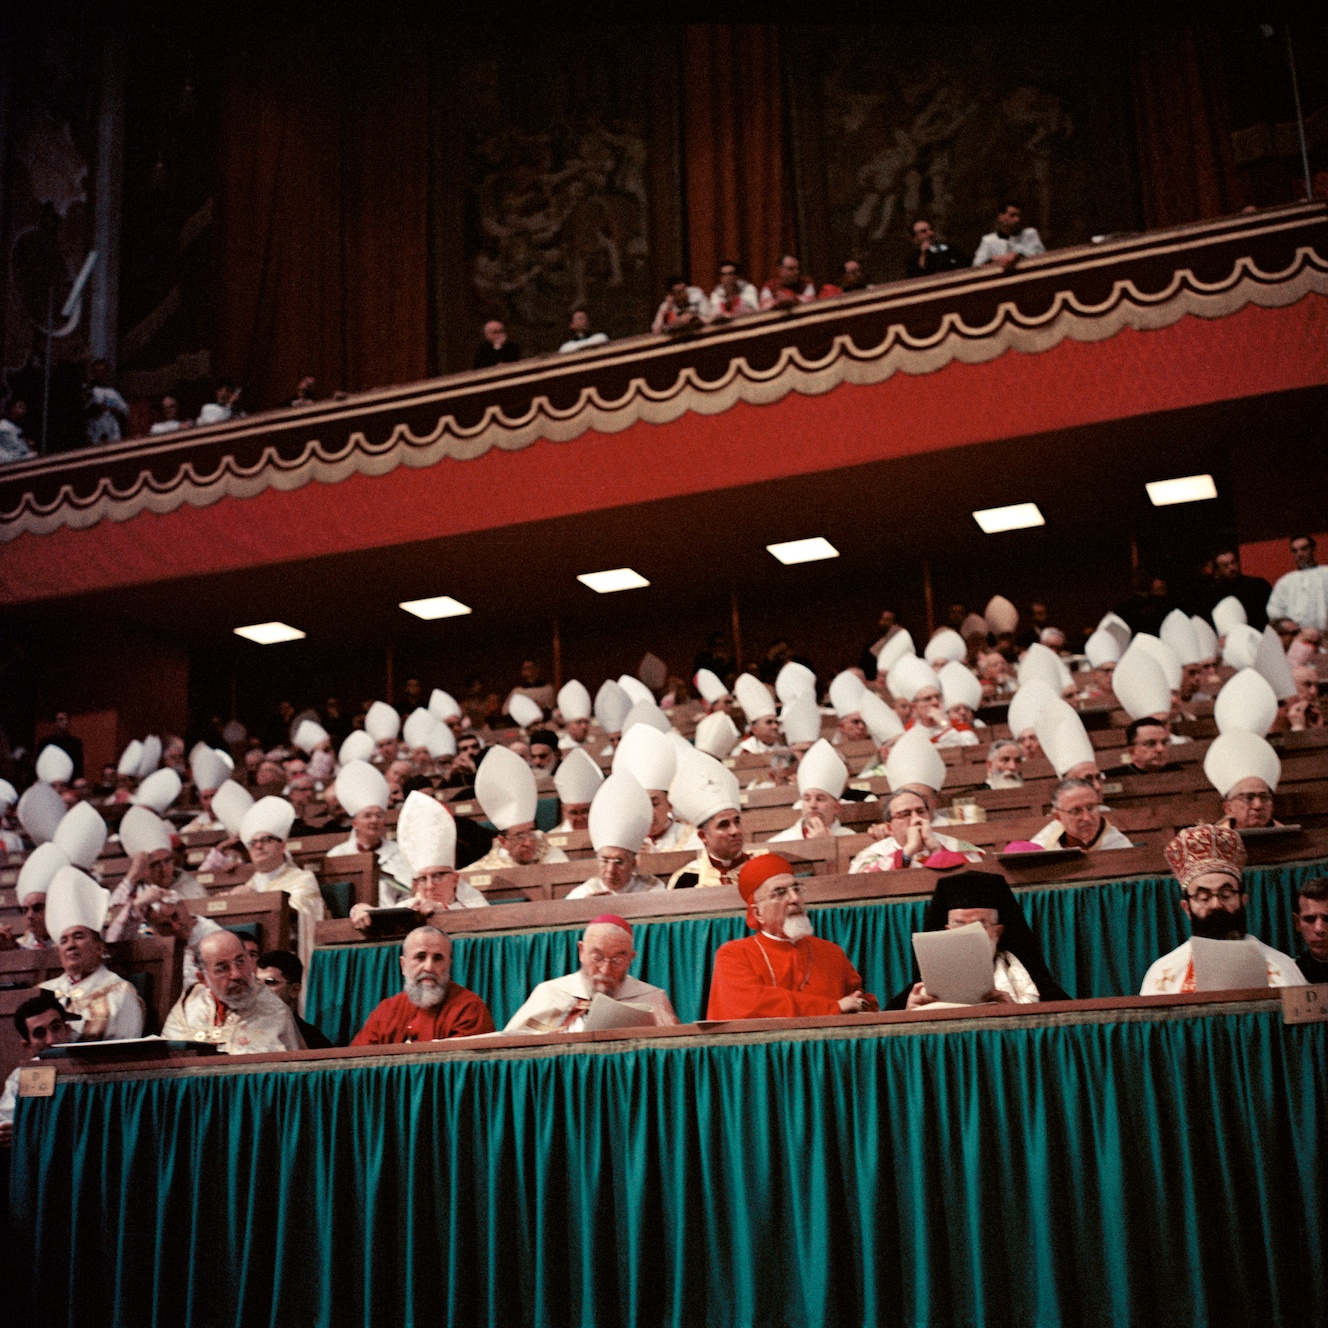 second vatican council View second vatican council research papers on academiaedu for free.